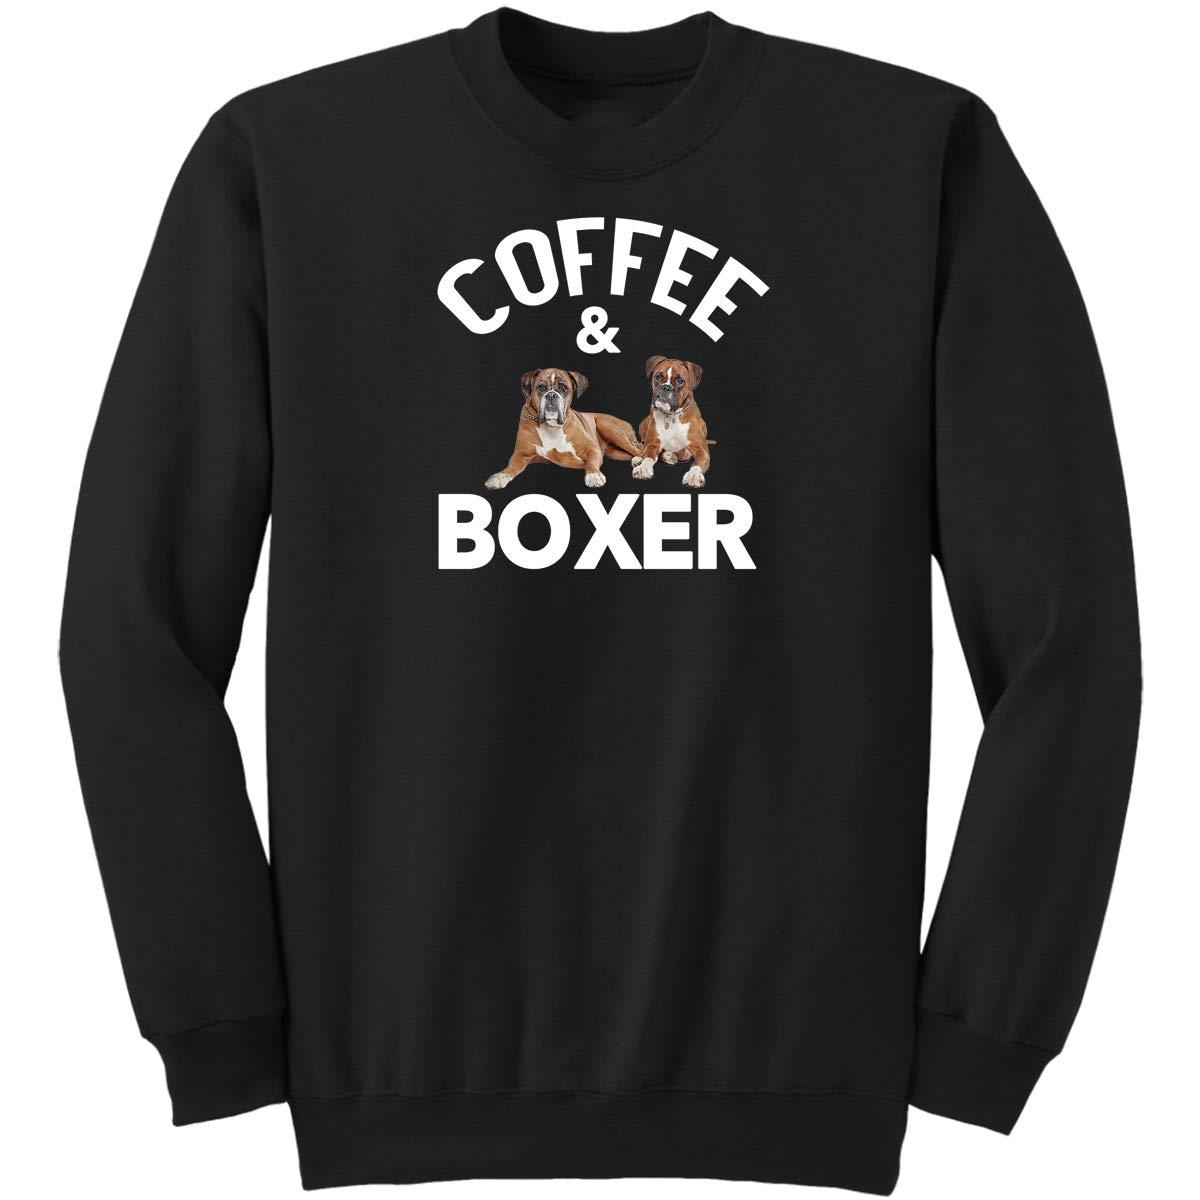 Funny Boxer Dog Saying Gifts Idea for Pet Lover Sweatshirt Coffee and Boxers